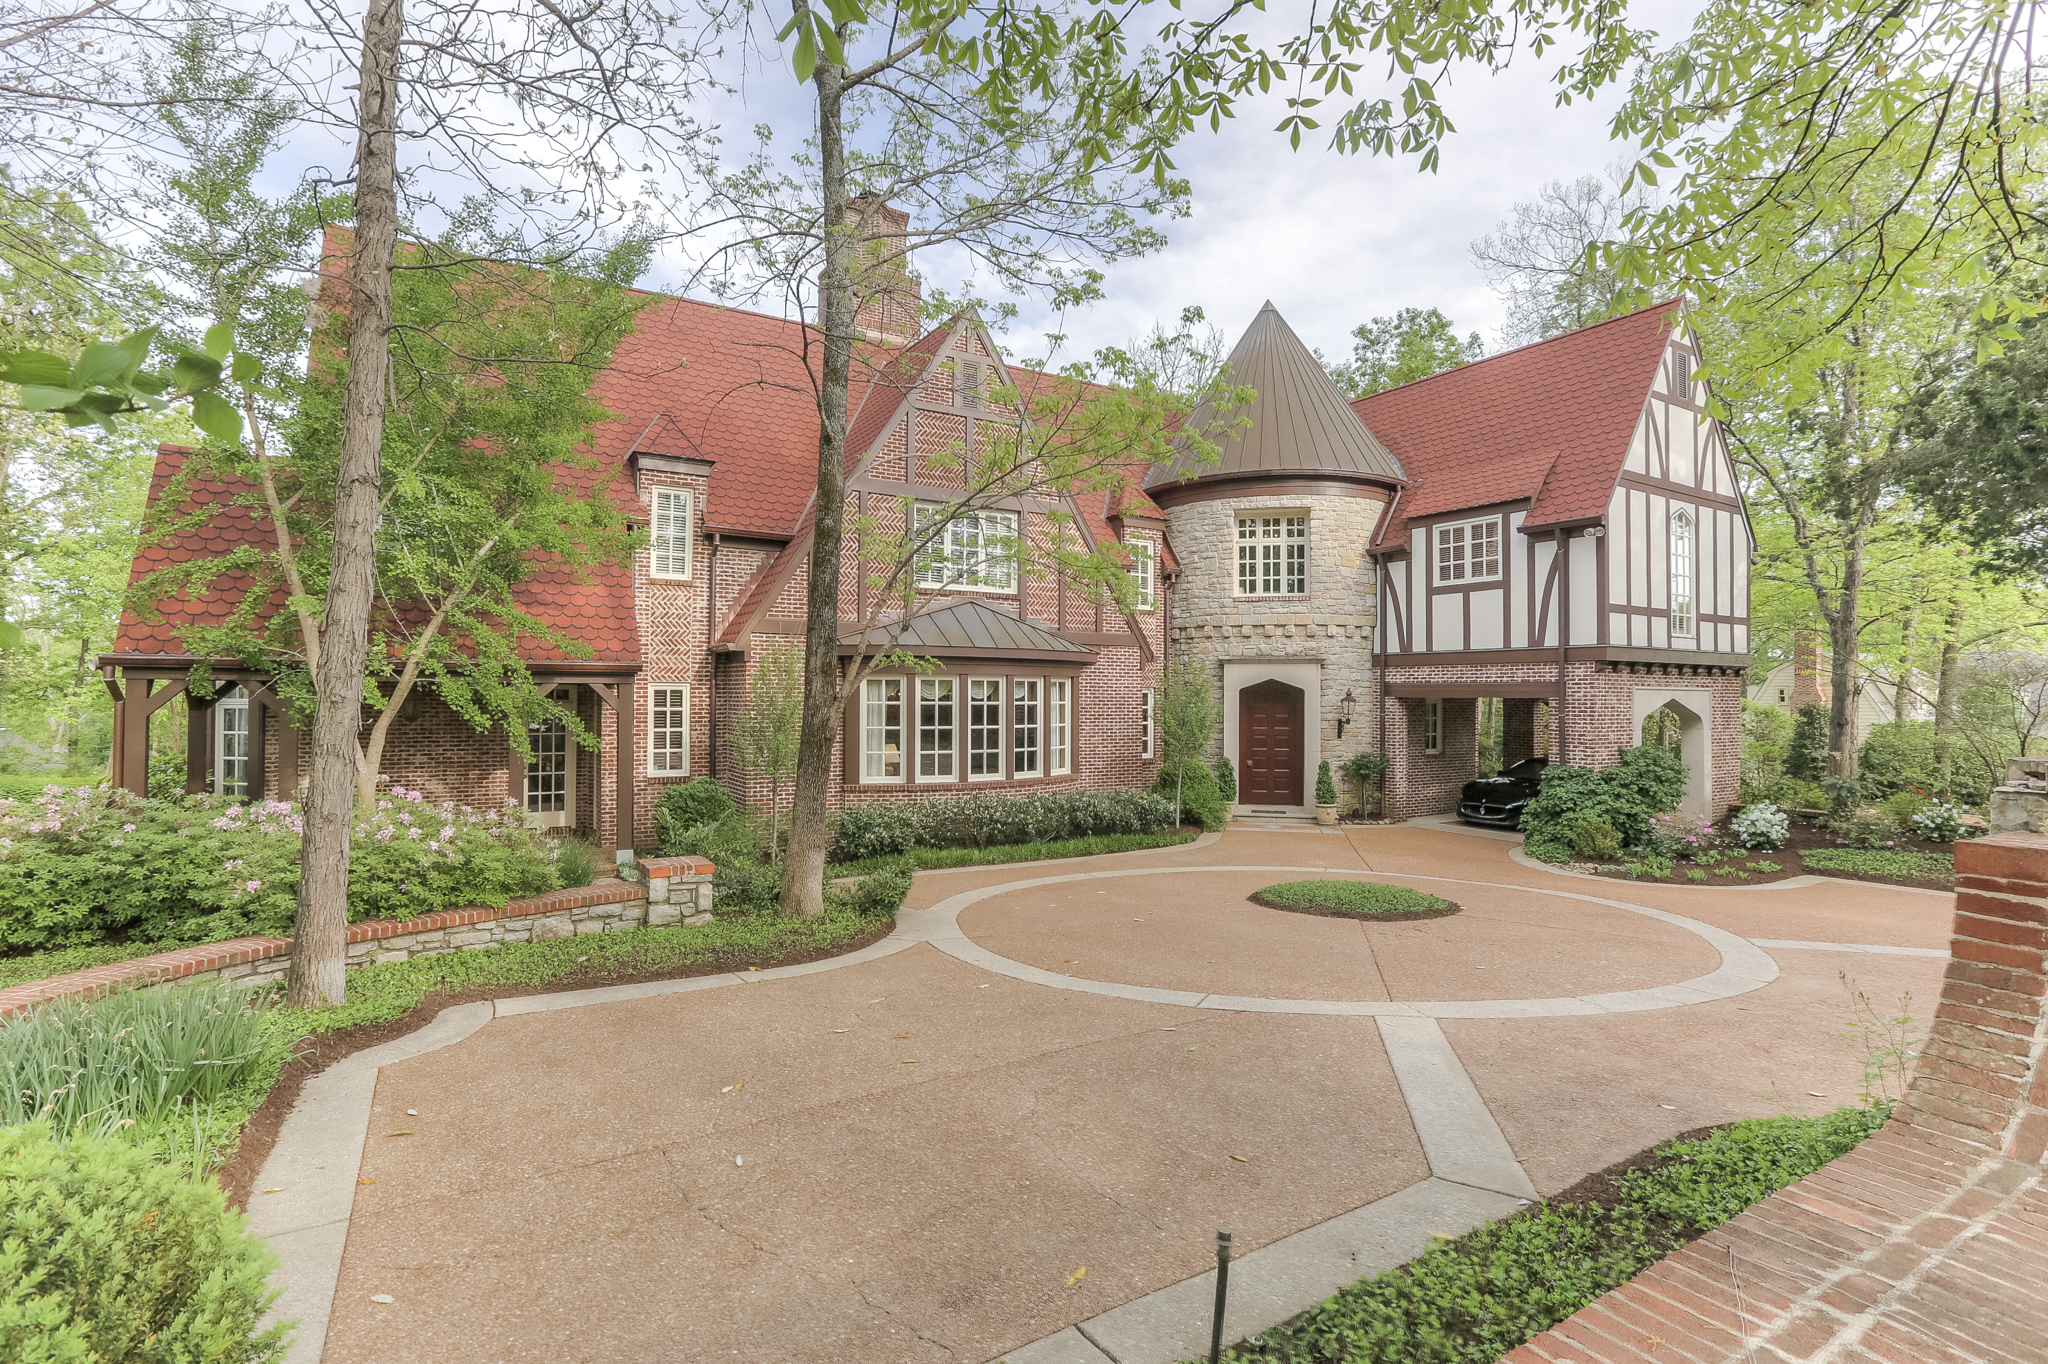 Single Family Home for Sale at Beautiful English Tudor 624 Westview Avenue Nashville, Tennessee, 37205 United States